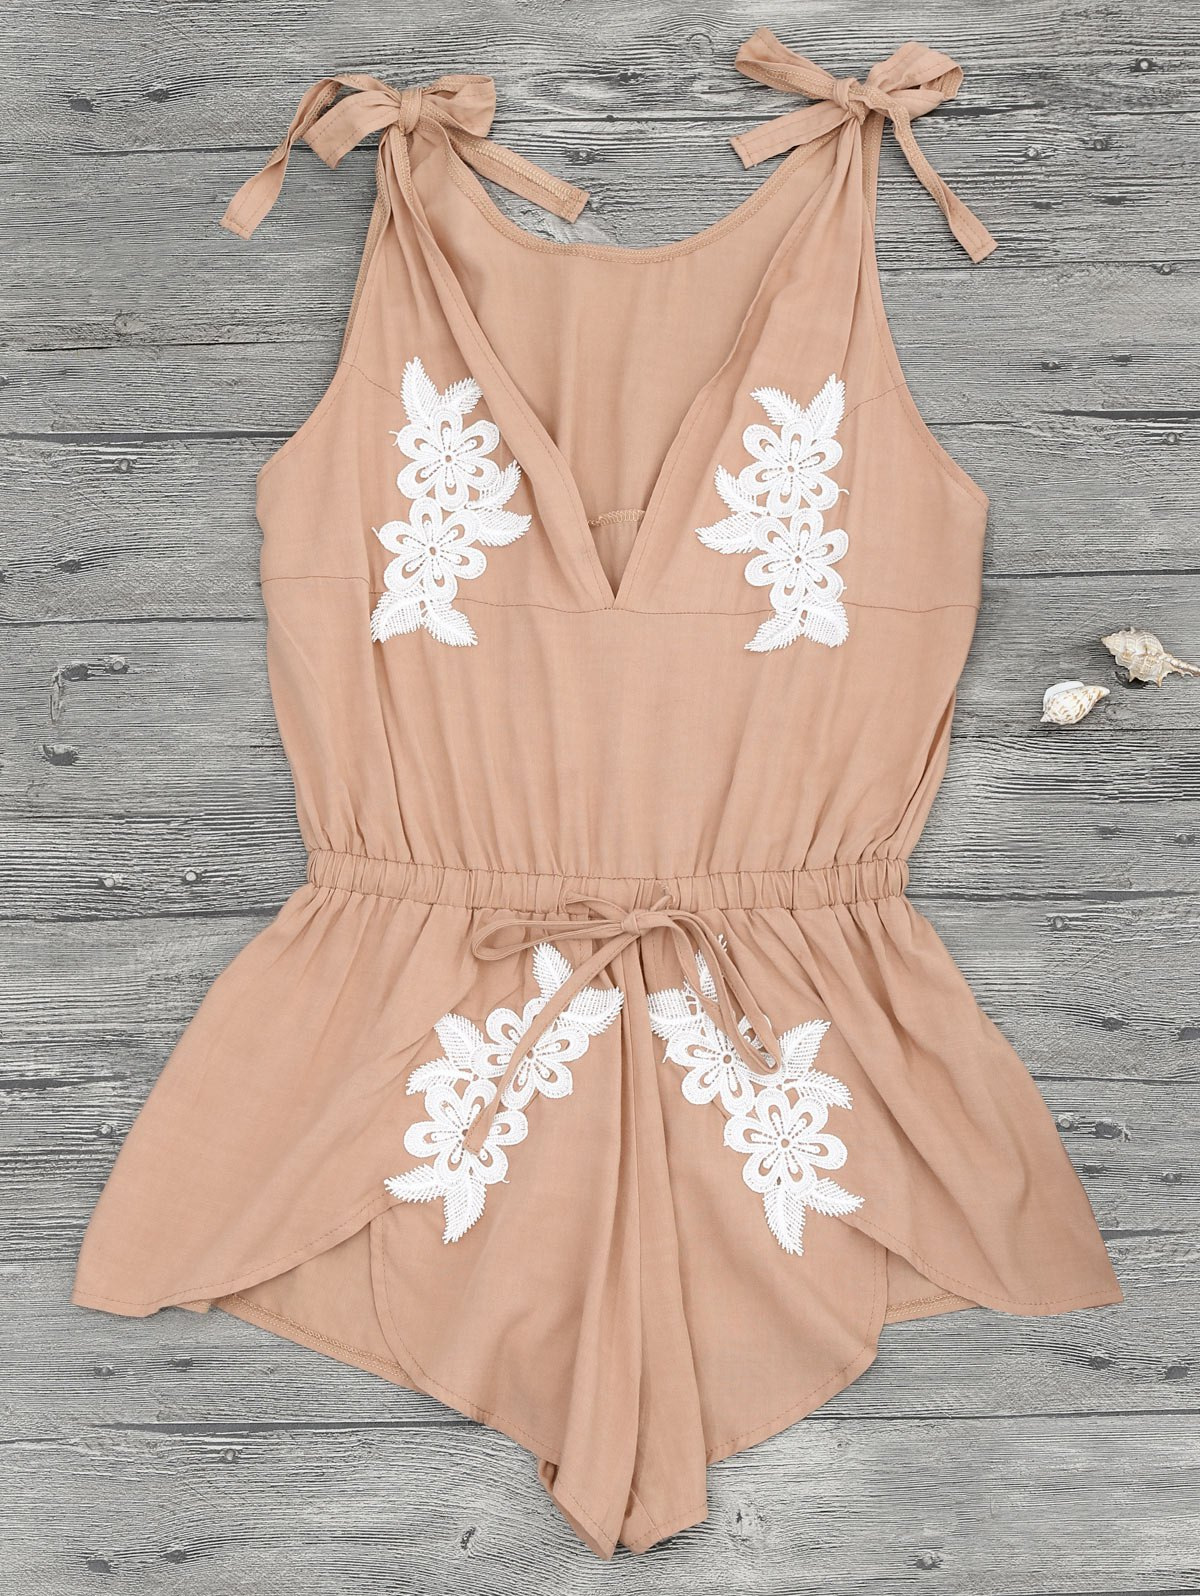 Floral Applique Drawstring Cover Up Romper - Apricot S